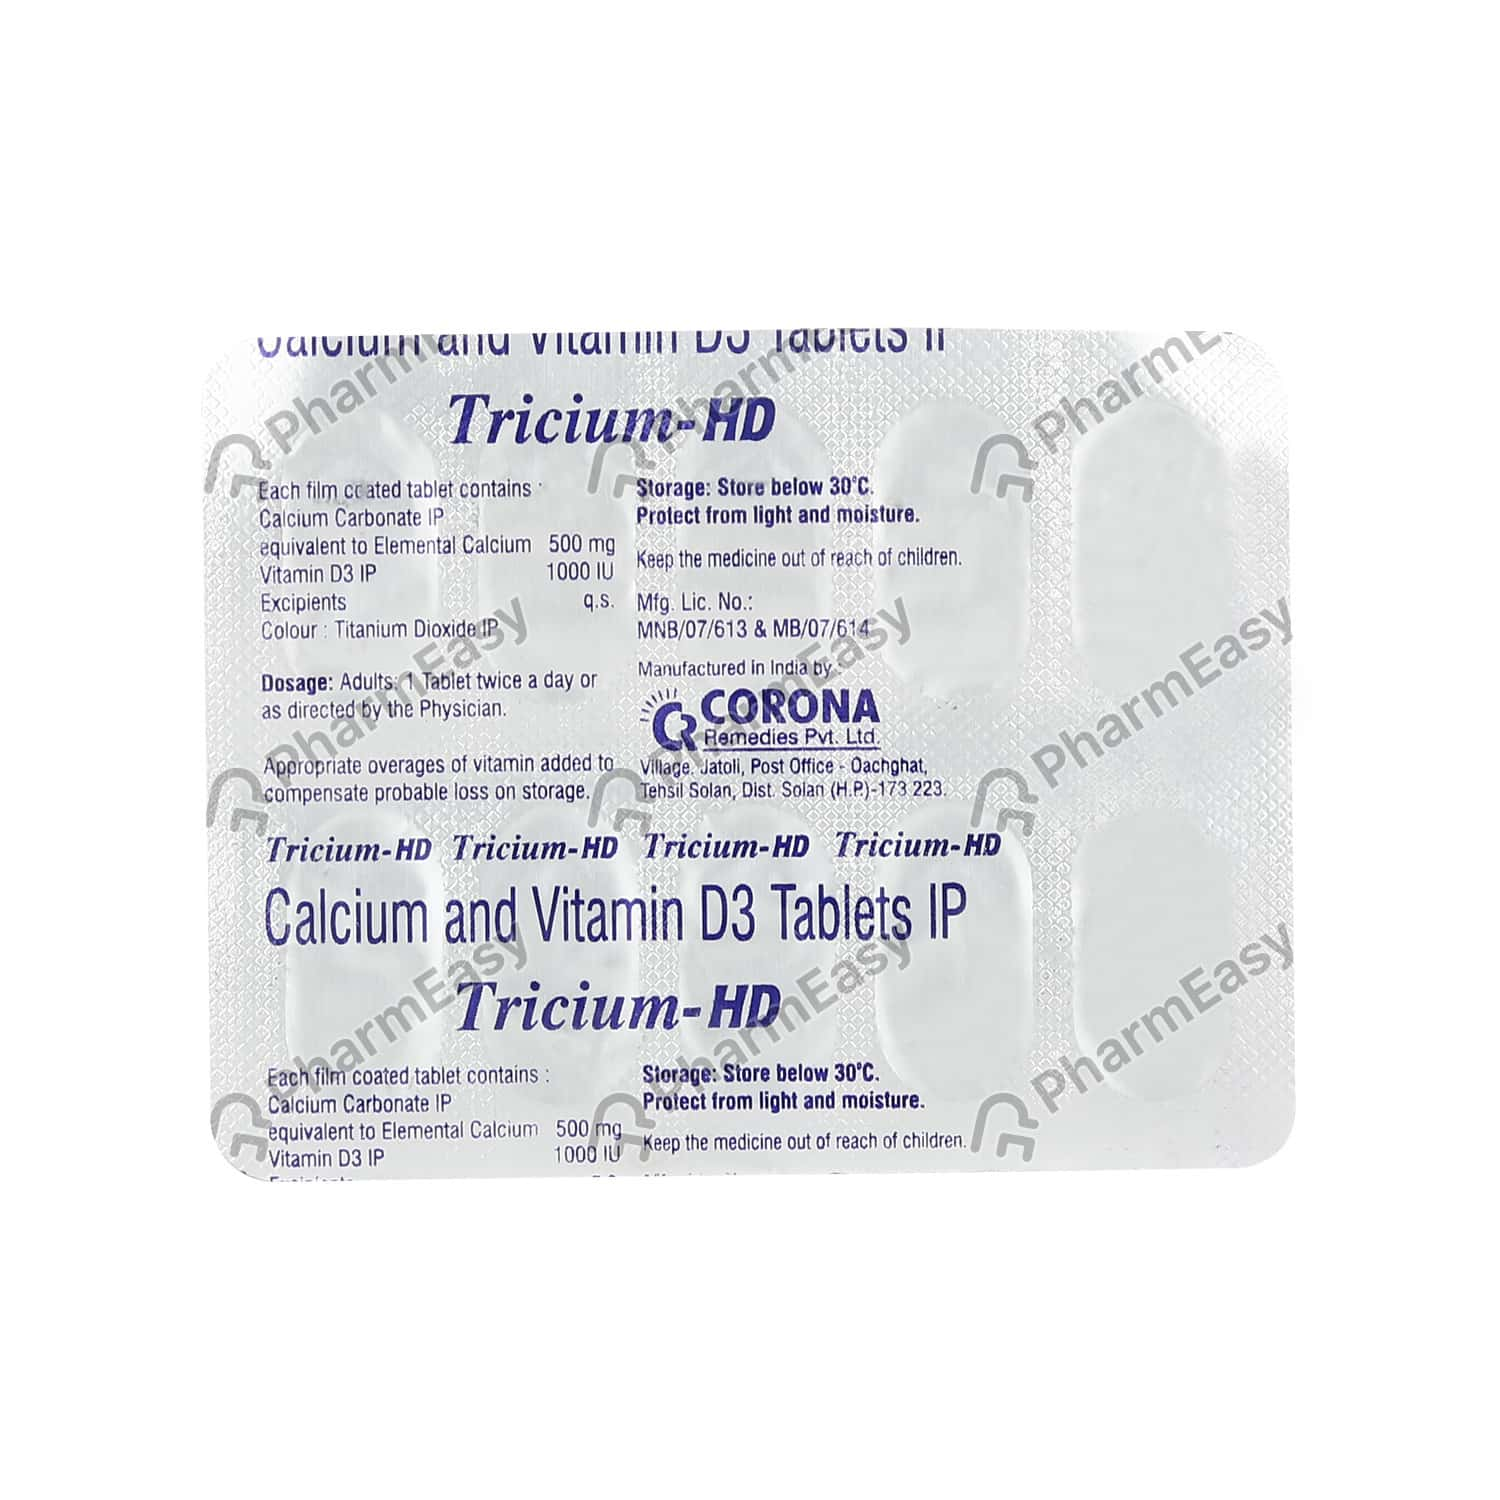 Tricium Hd Strip Of 10 Tablets